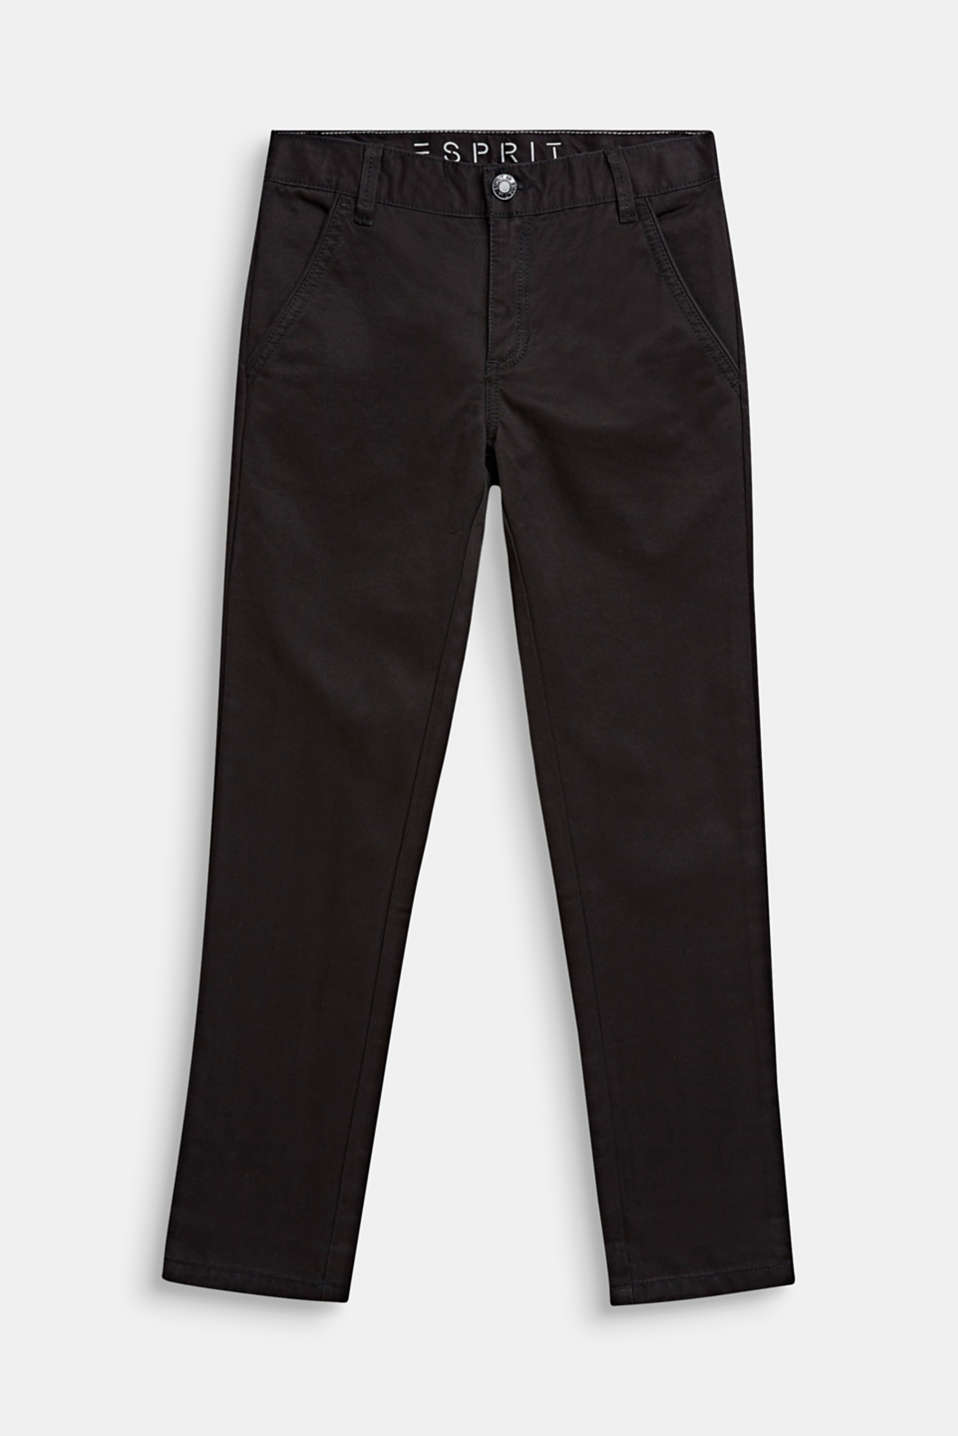 Chinos with adjustable waistband, 100% cotton, LCANTHRACITE, detail image number 0